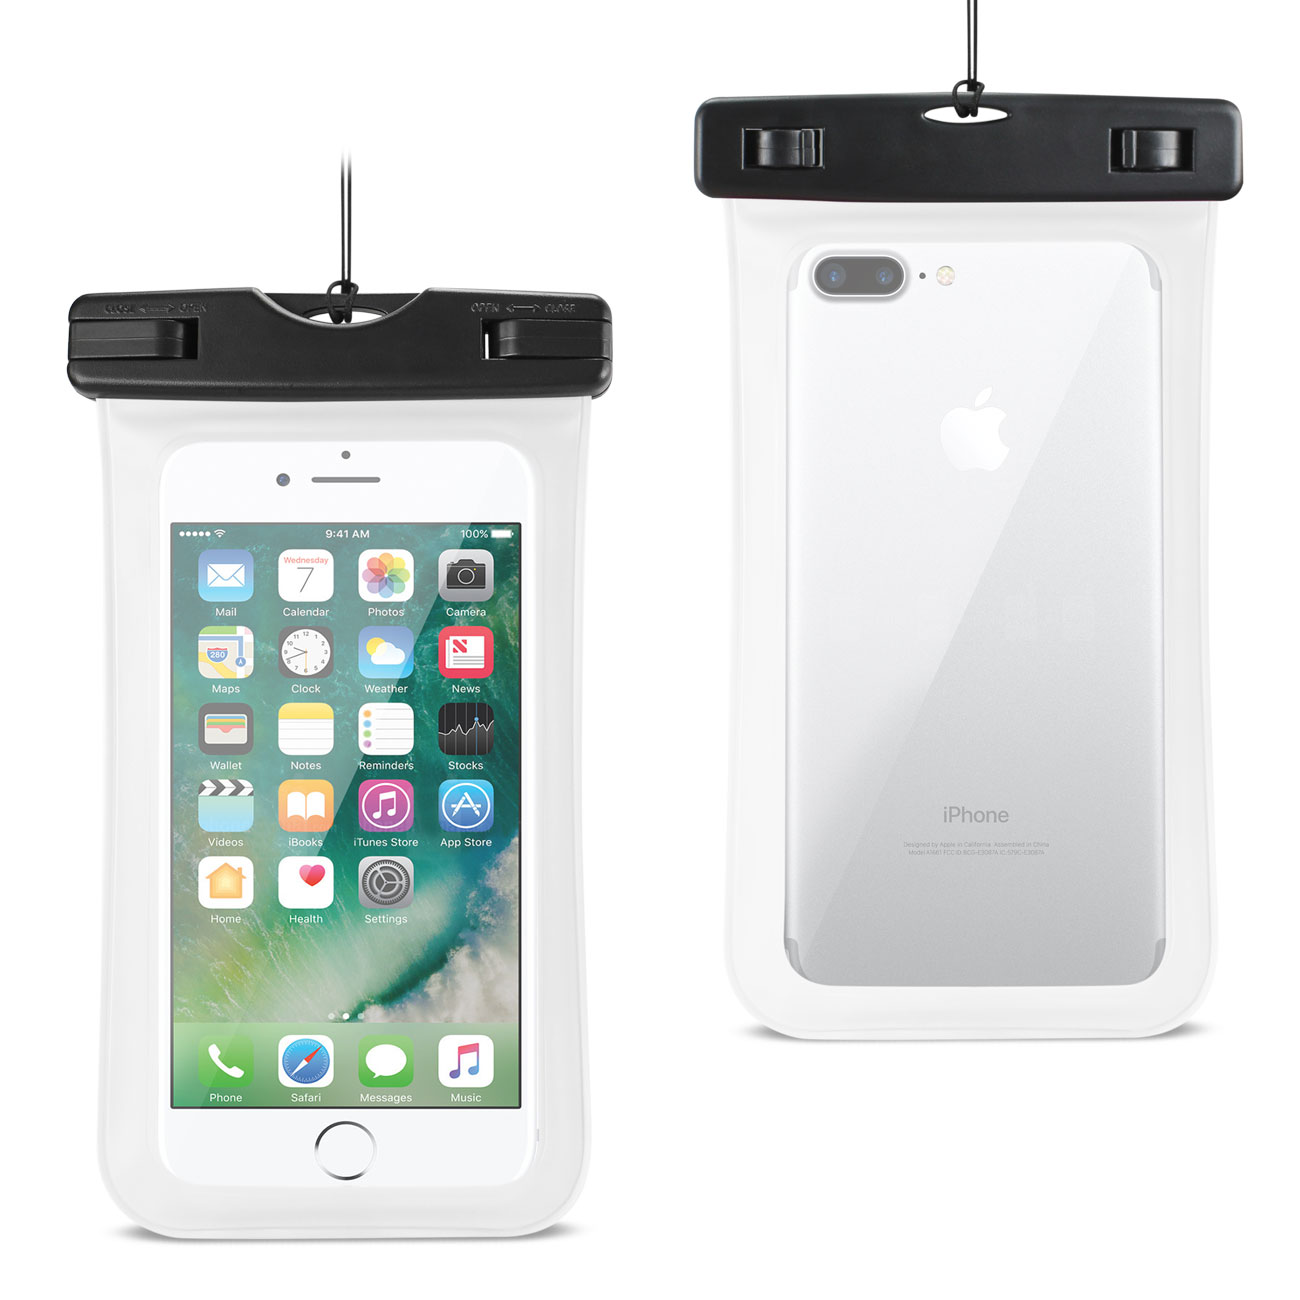 brand new a72be 6dd51 Reiko Waterproof Case For iPhone 6 Plus/ 6S Plus/ 7 Plus Or 5.5